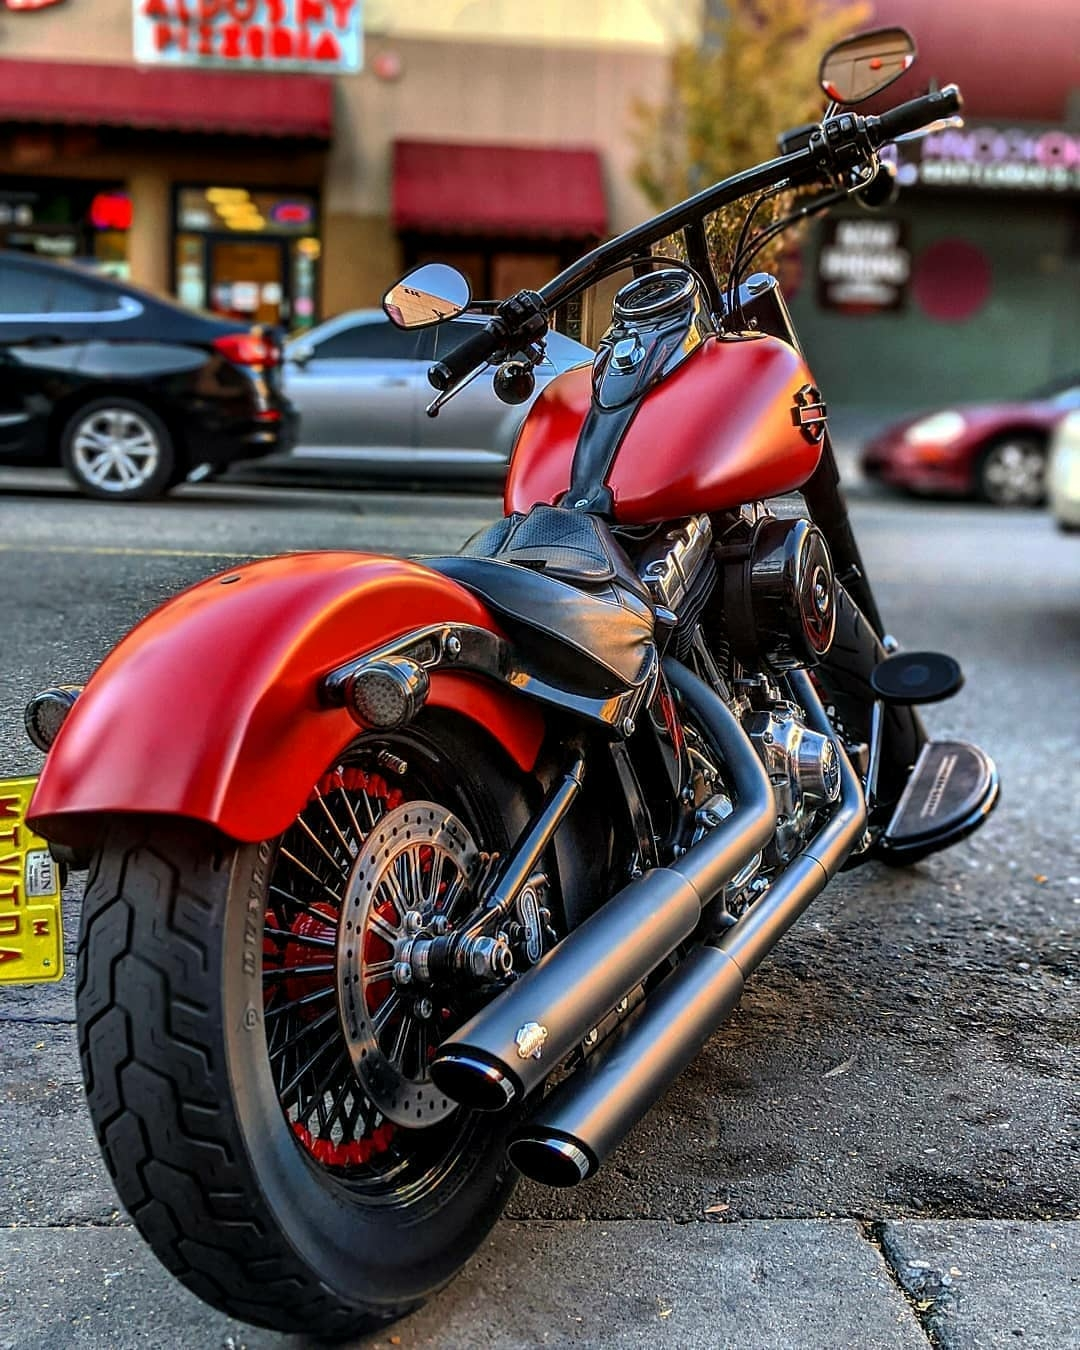 red harley parked on street